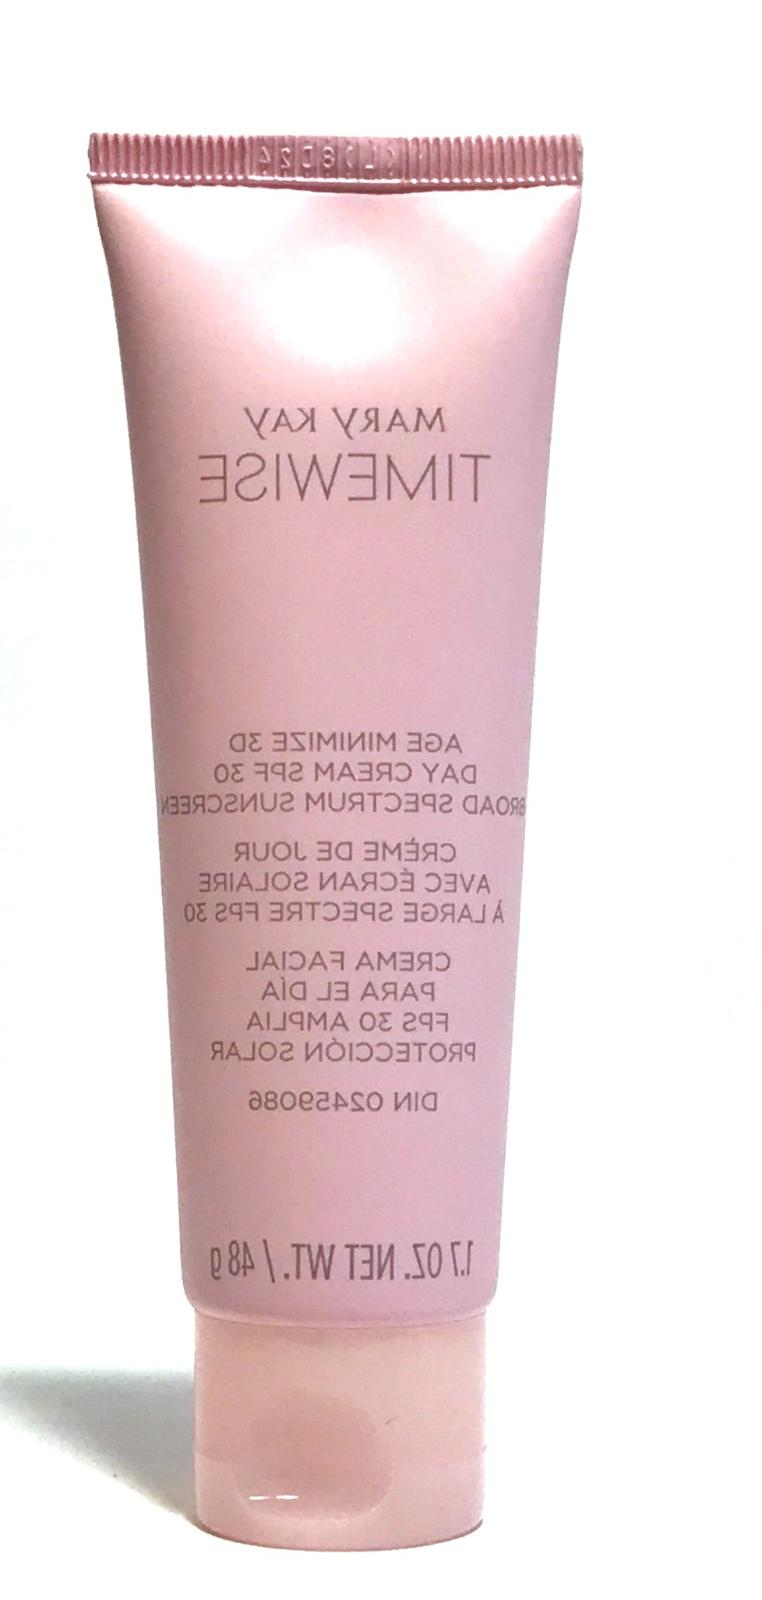 MARY KAY TIMEWISE AGE MINIMIZE 3D~EXPIRED SPF 30 DAY CREAM~N